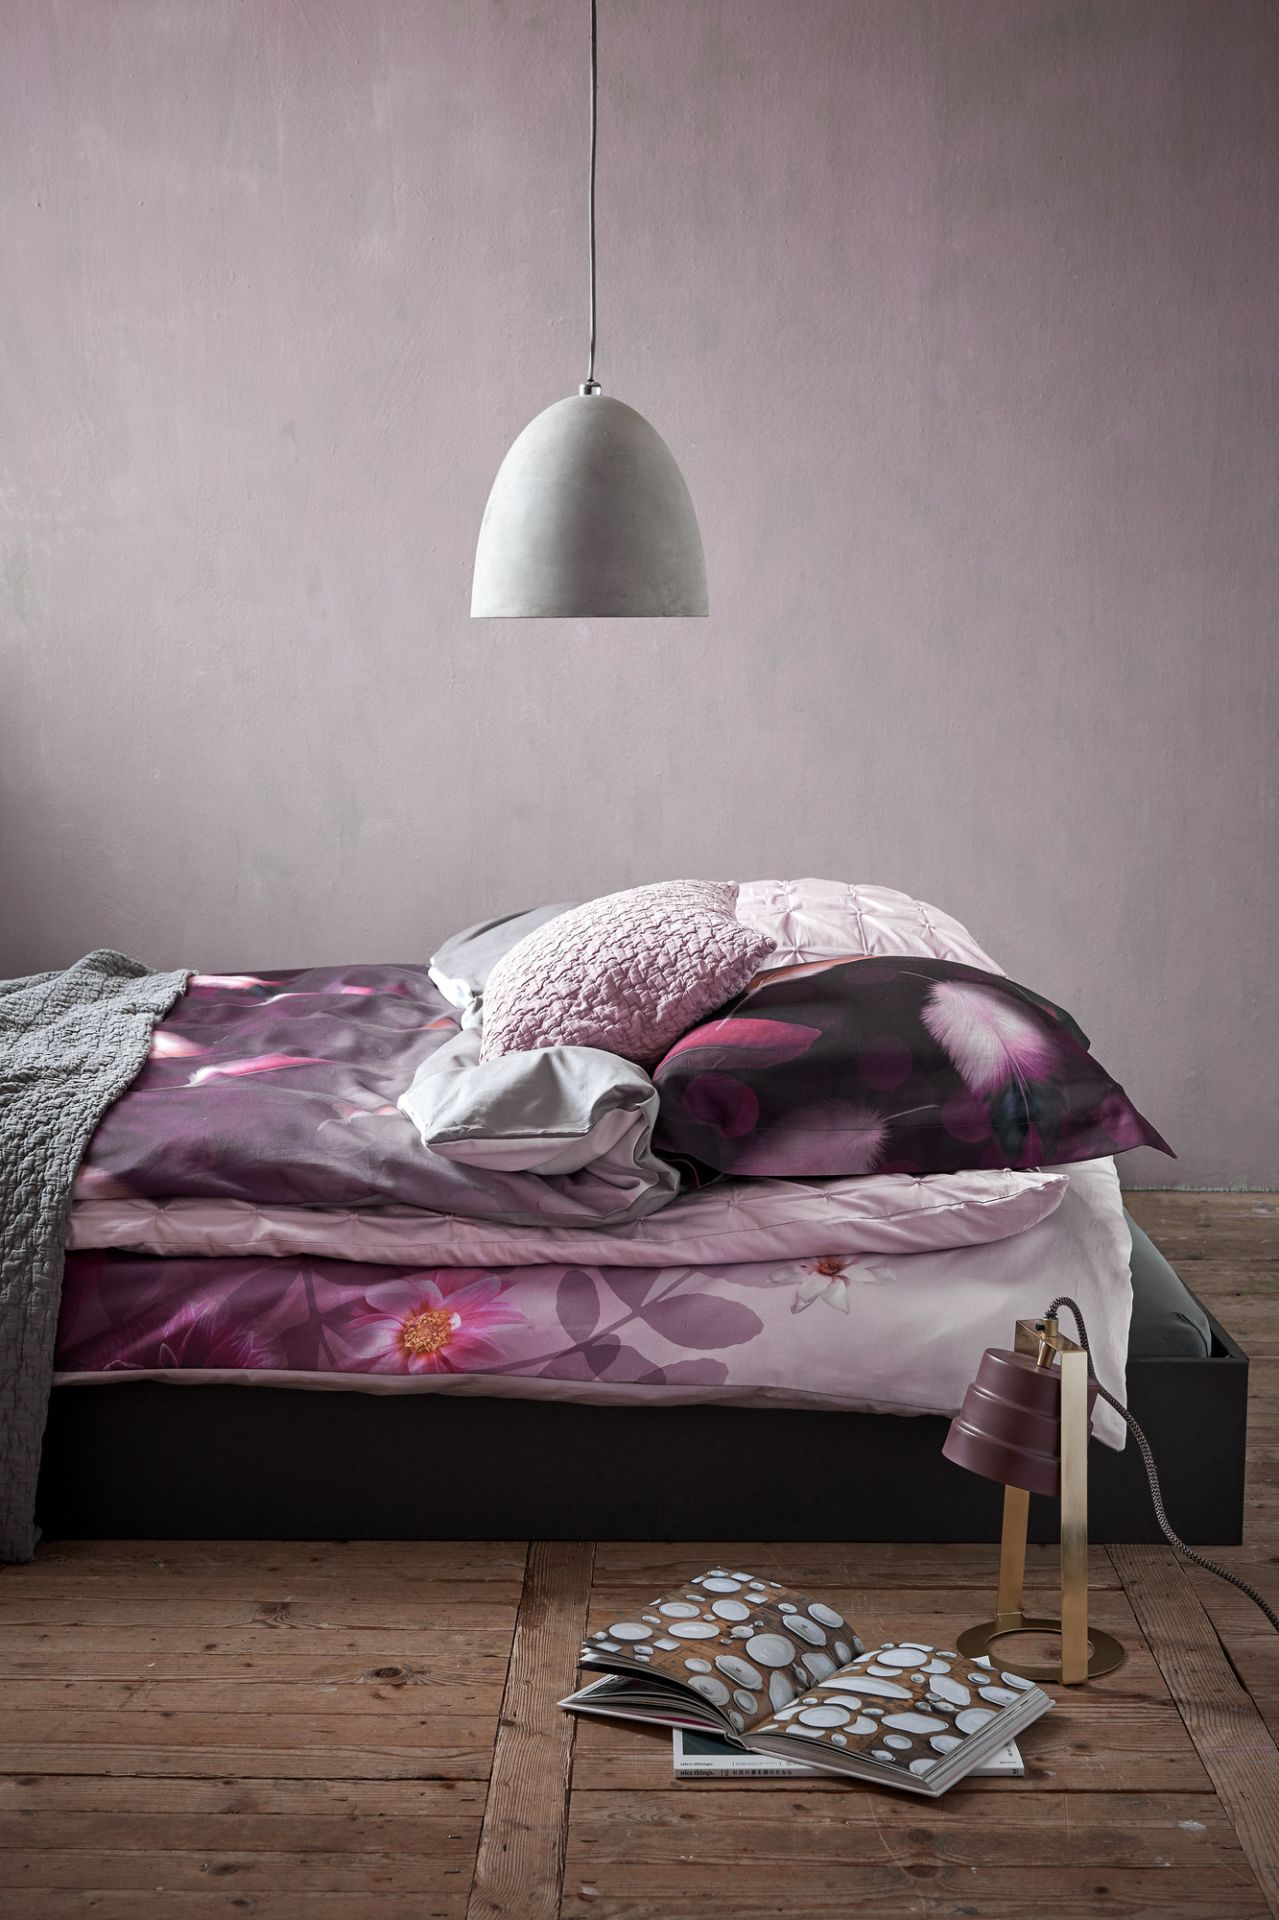 Vandyck Bubbling Feathers  000 Multi, Passion 022 Aubergine, Home 73 008 Light pink, Pure 10 144 Sepia pink and 426 Steel grey